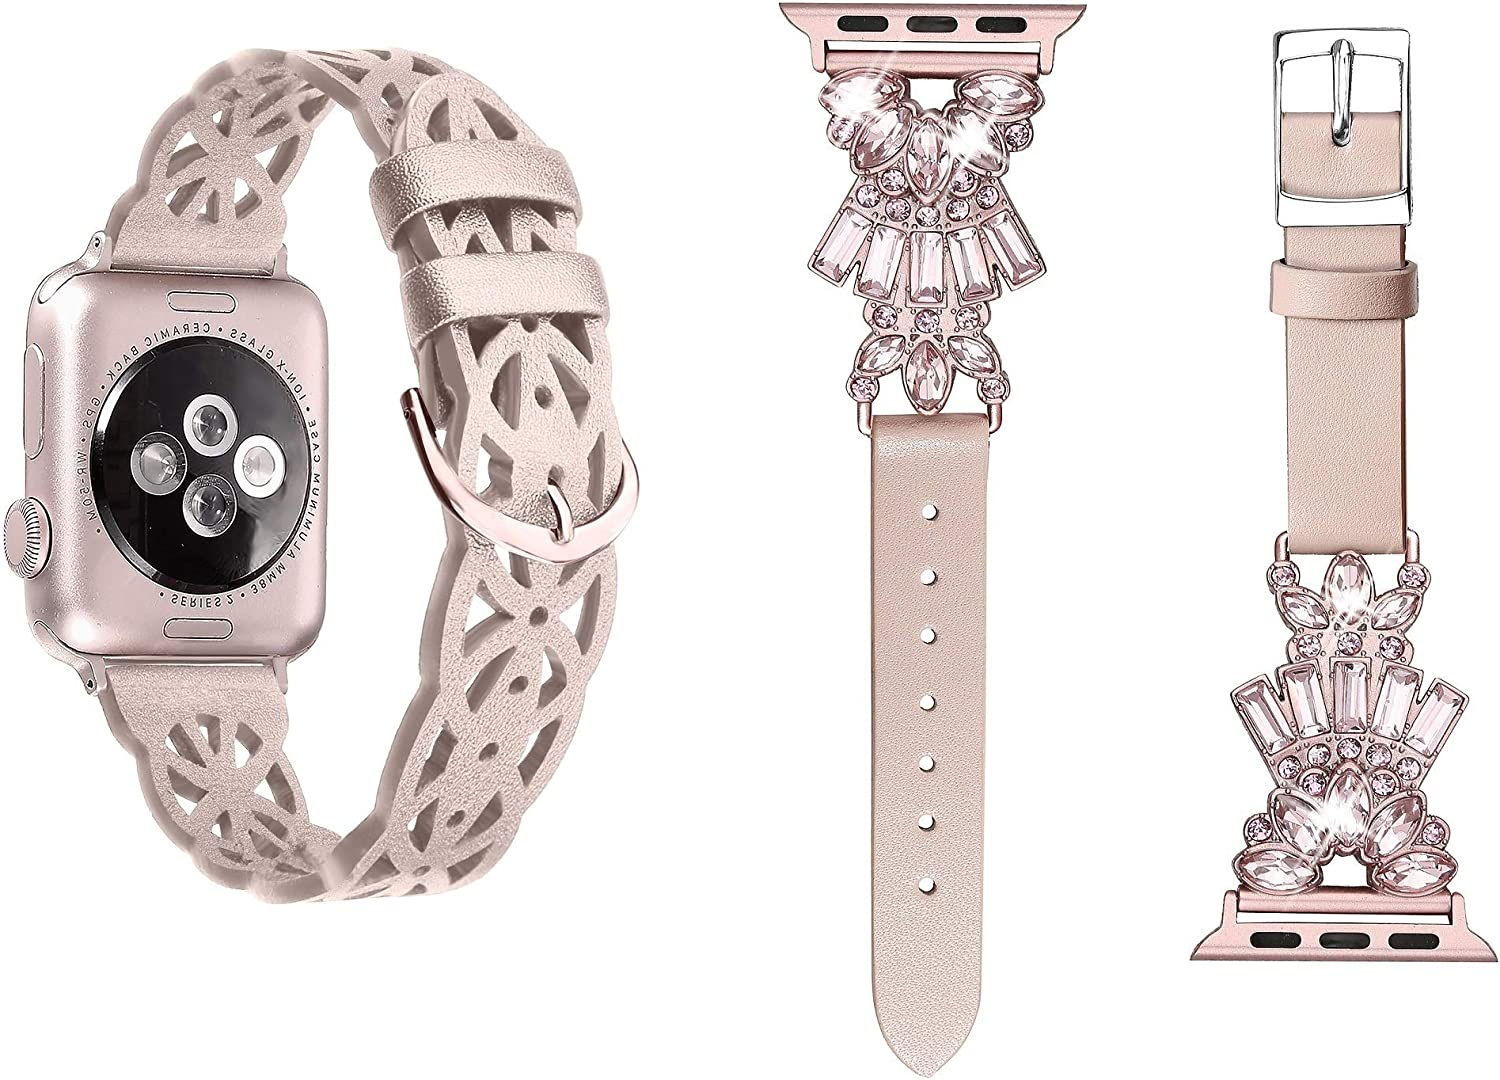 Secbolt Rose Gold Hollowed-Out Leather Band and Pink Leather Band with Bling Compatible with Apple Watch Band 38mm 40mm iWatch SE Series 6 5 4 3 2 1